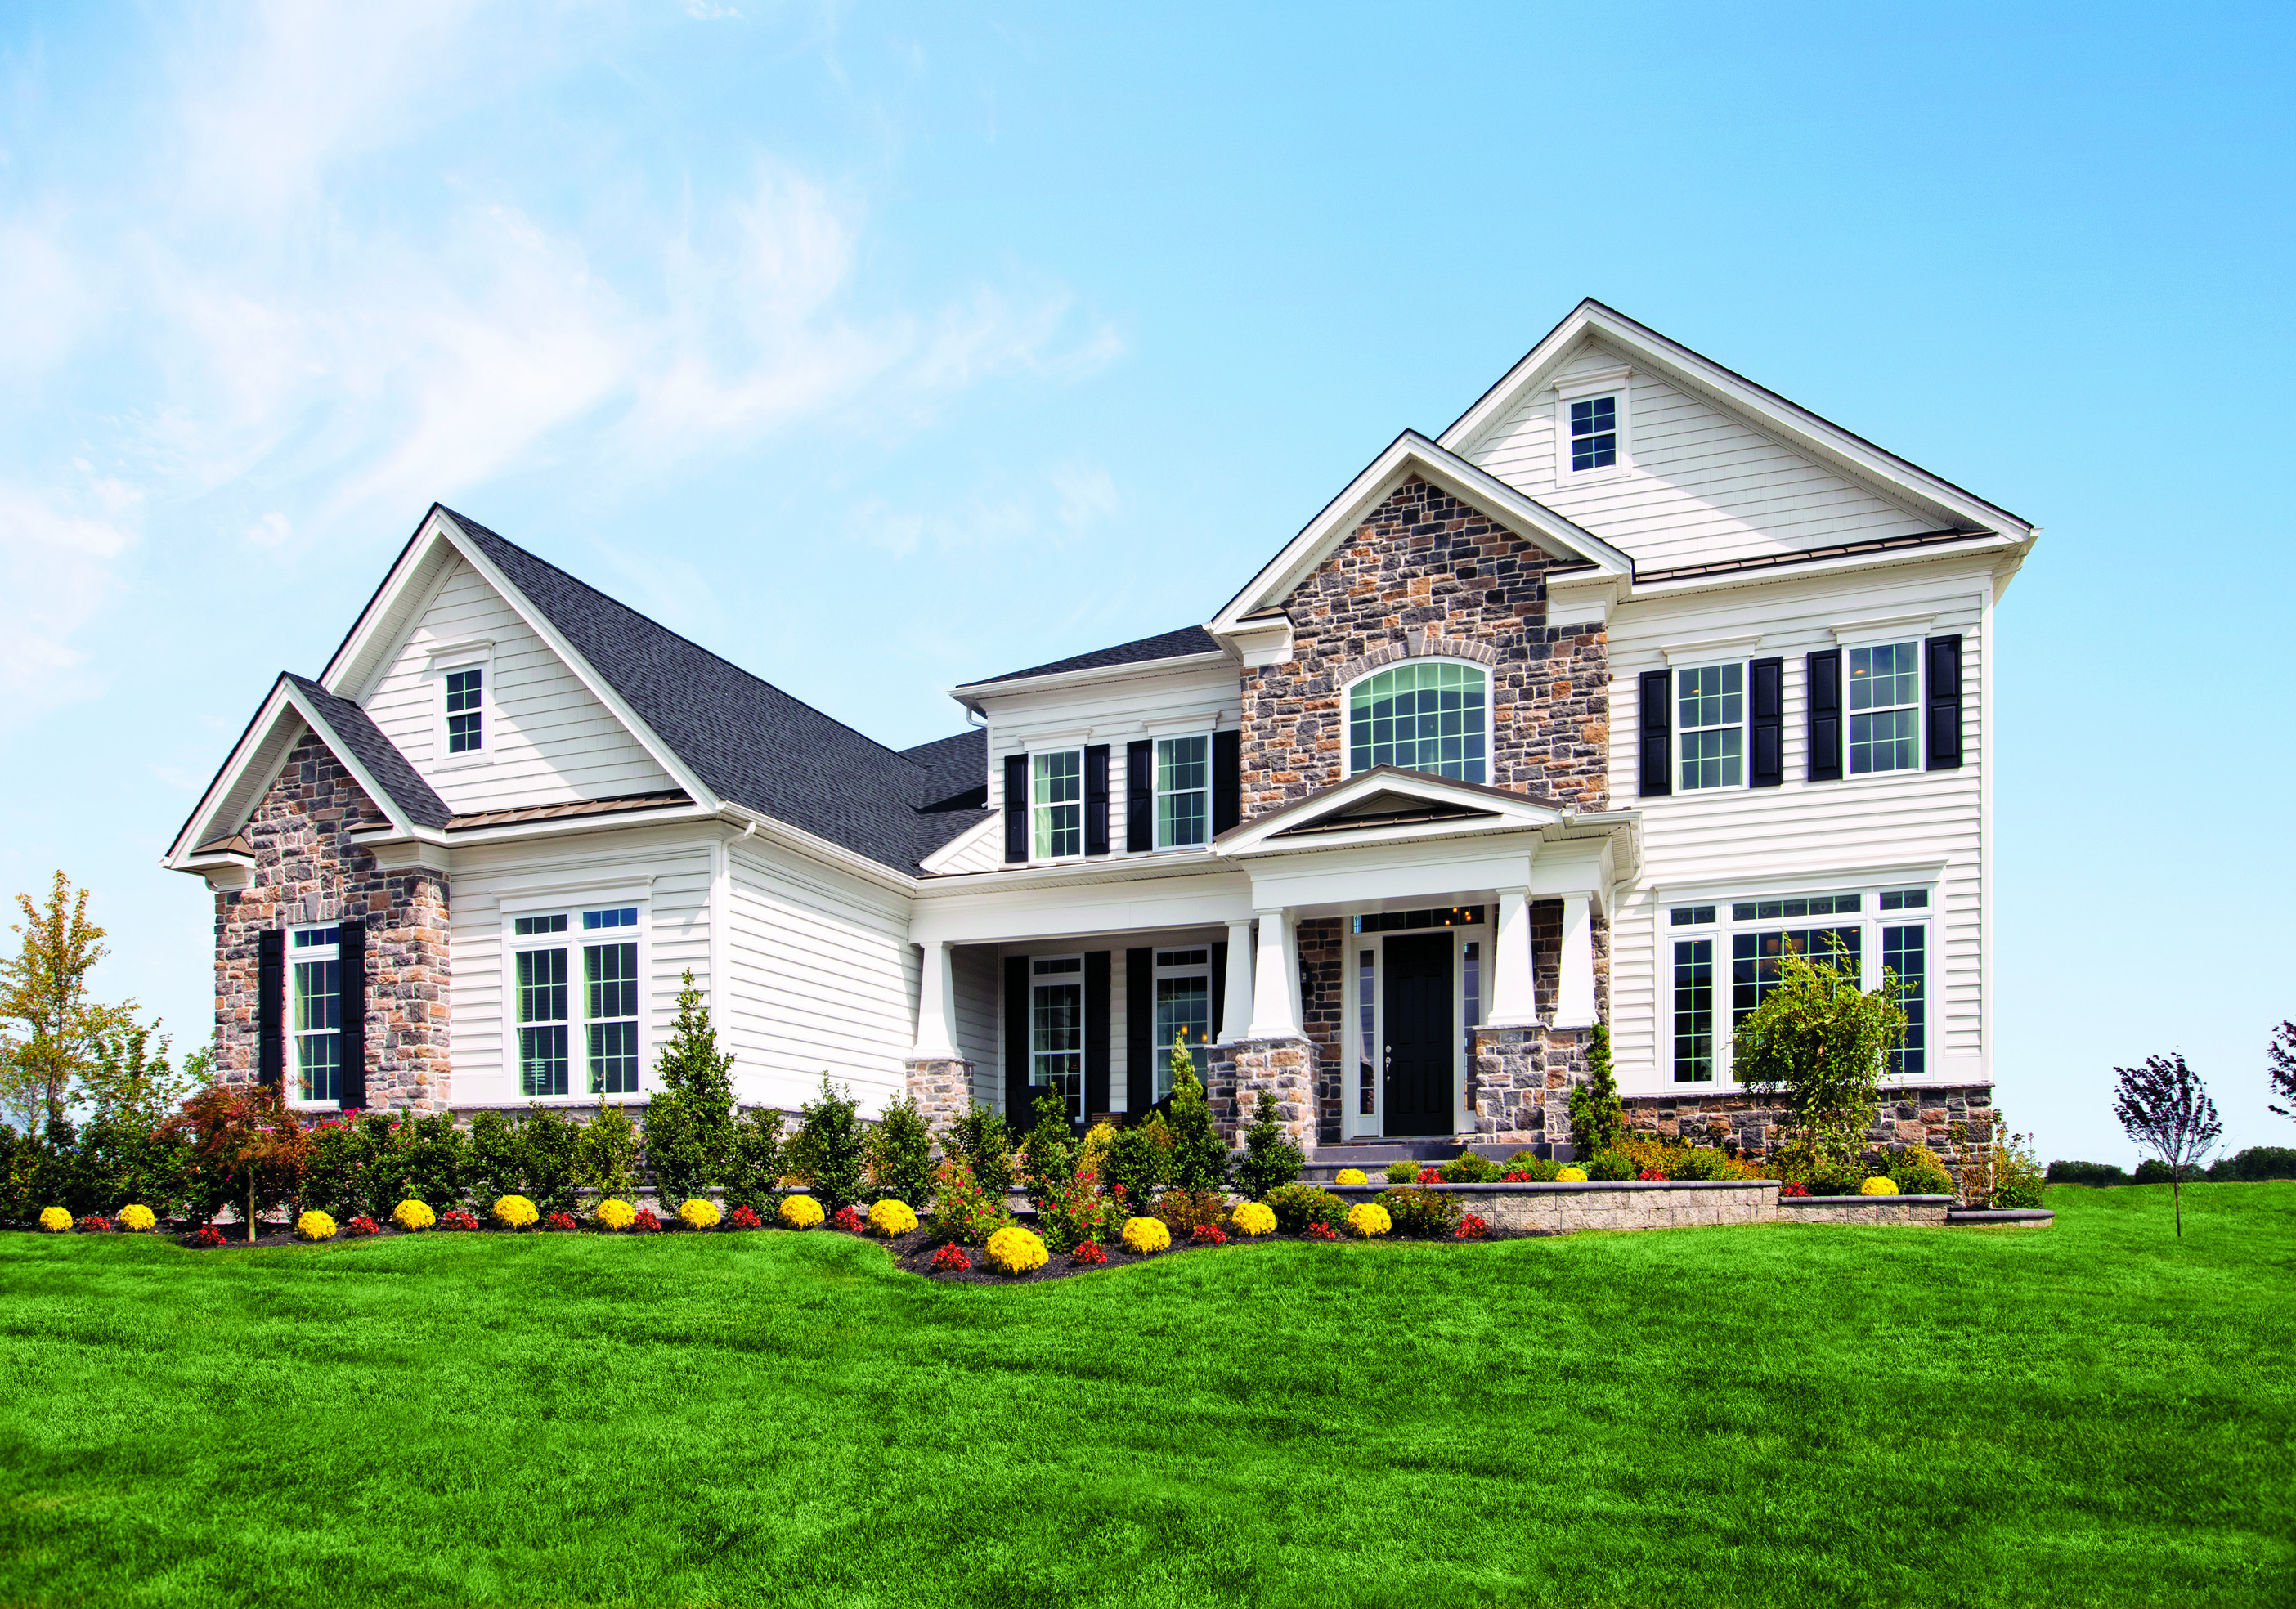 Toll Brothers Hollister model home located in New Castle, DE